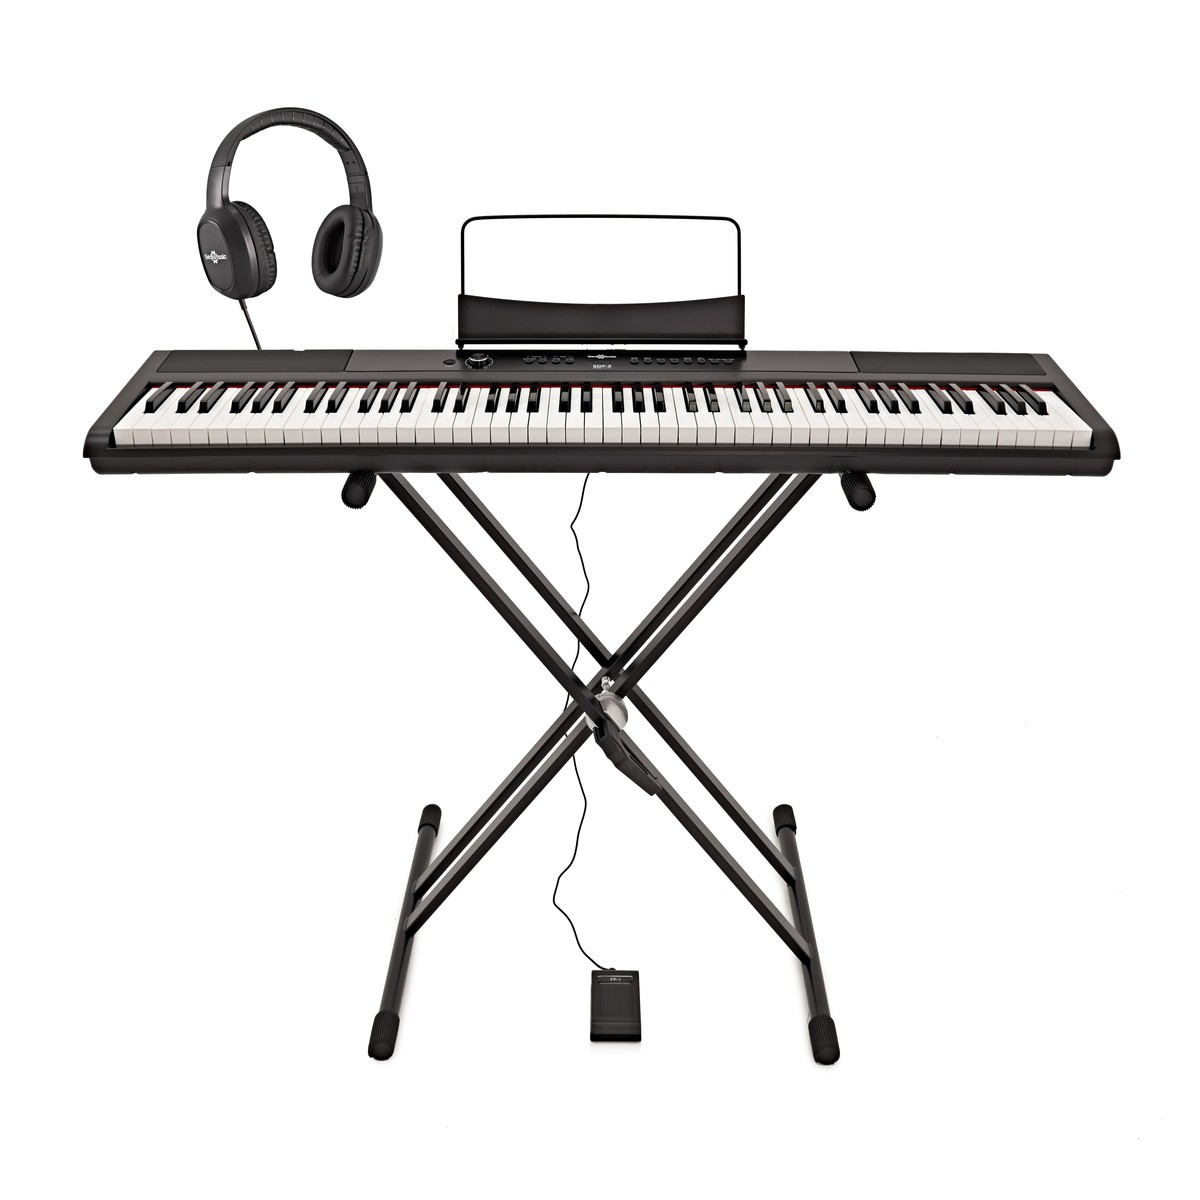 SDP-2 Stage Piano by Gear4music   Stand, Pedal and Headphones